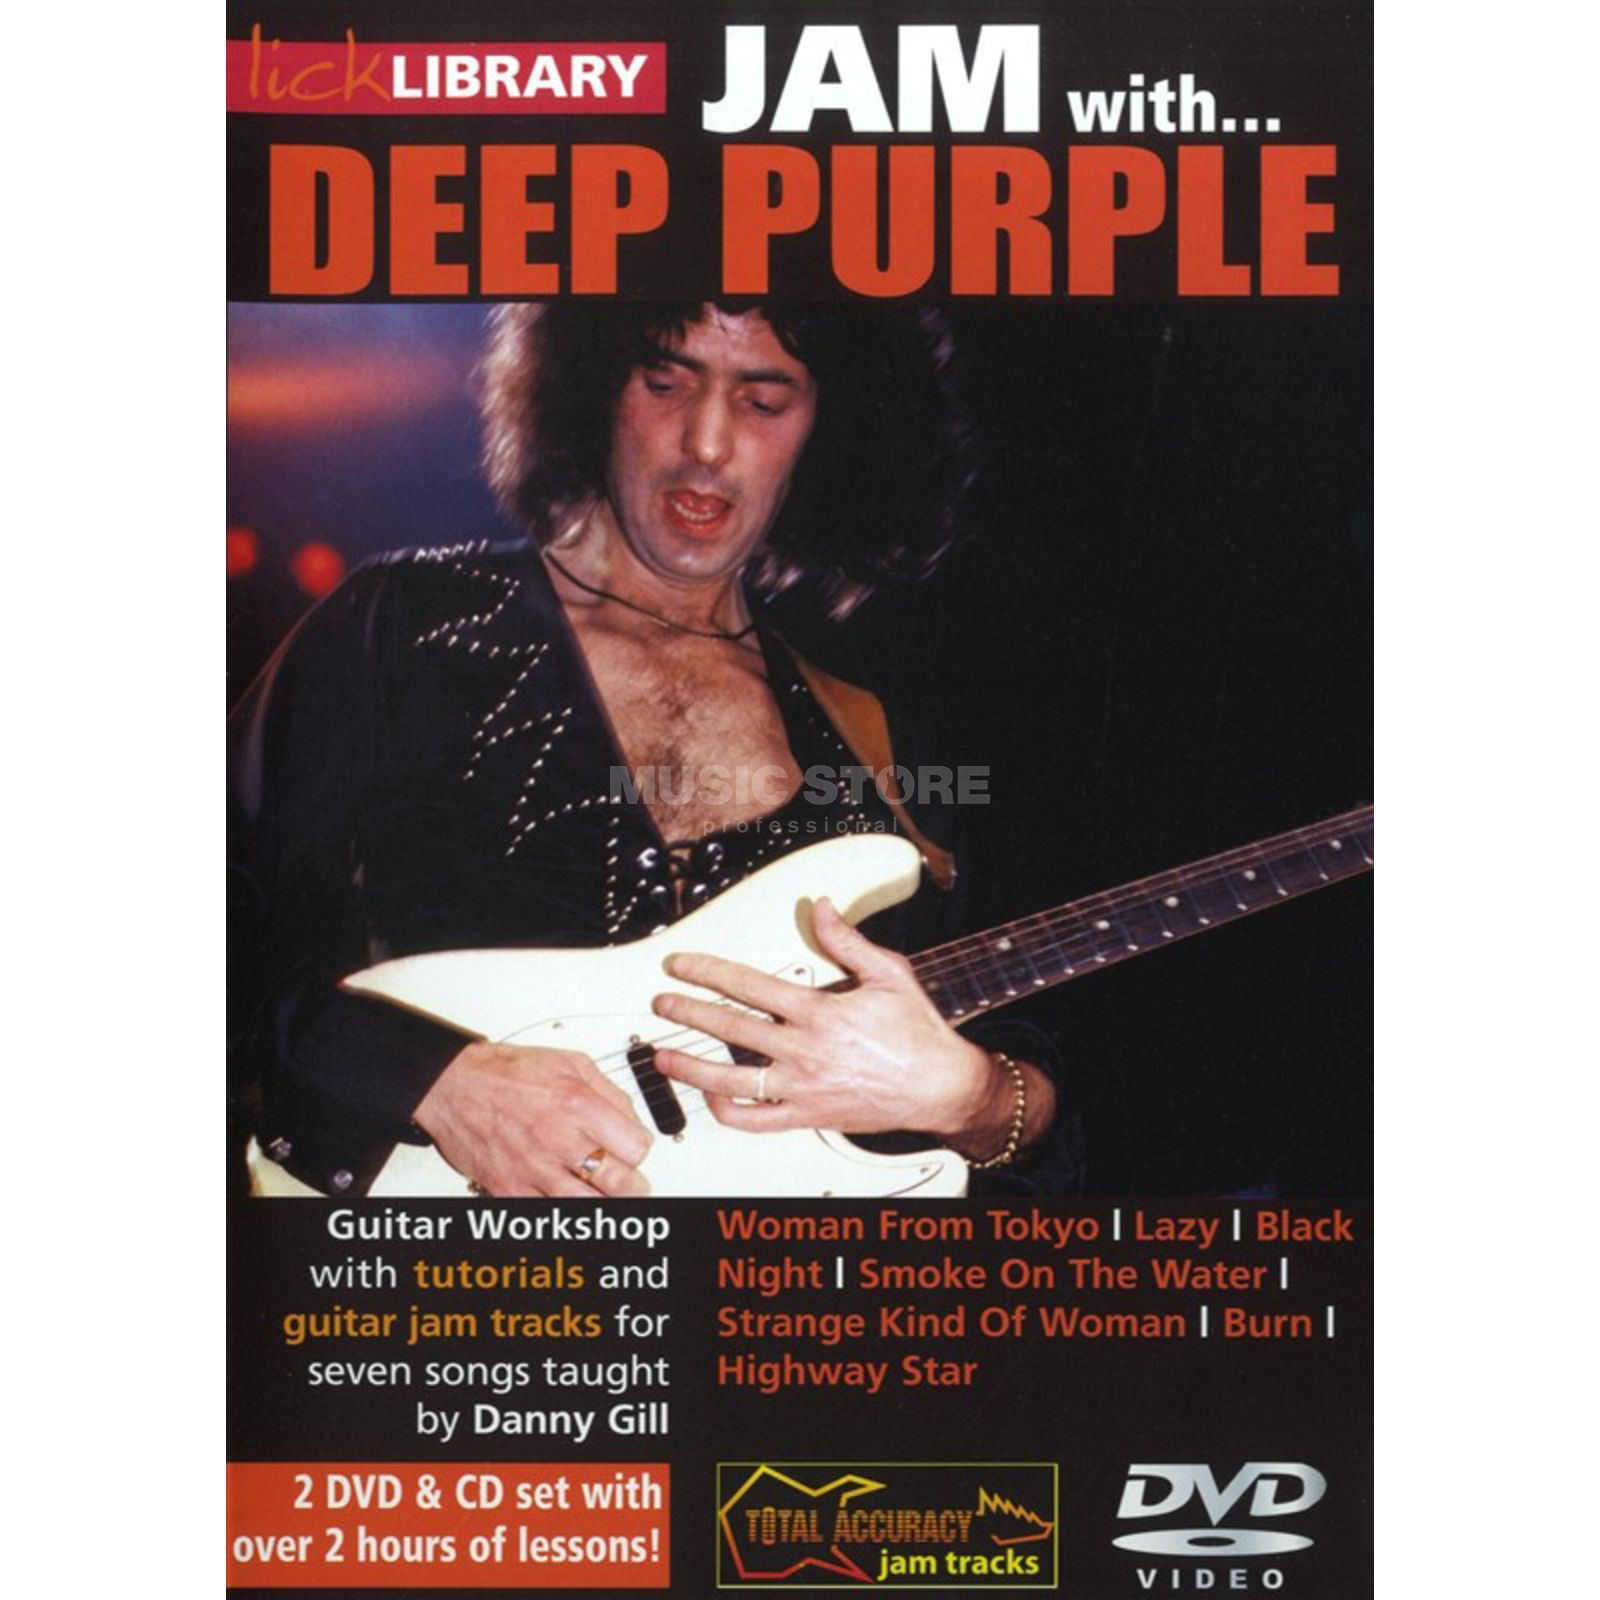 Roadrock International Lick Library: Jam With Deep Purple DVD, CD Produktbild